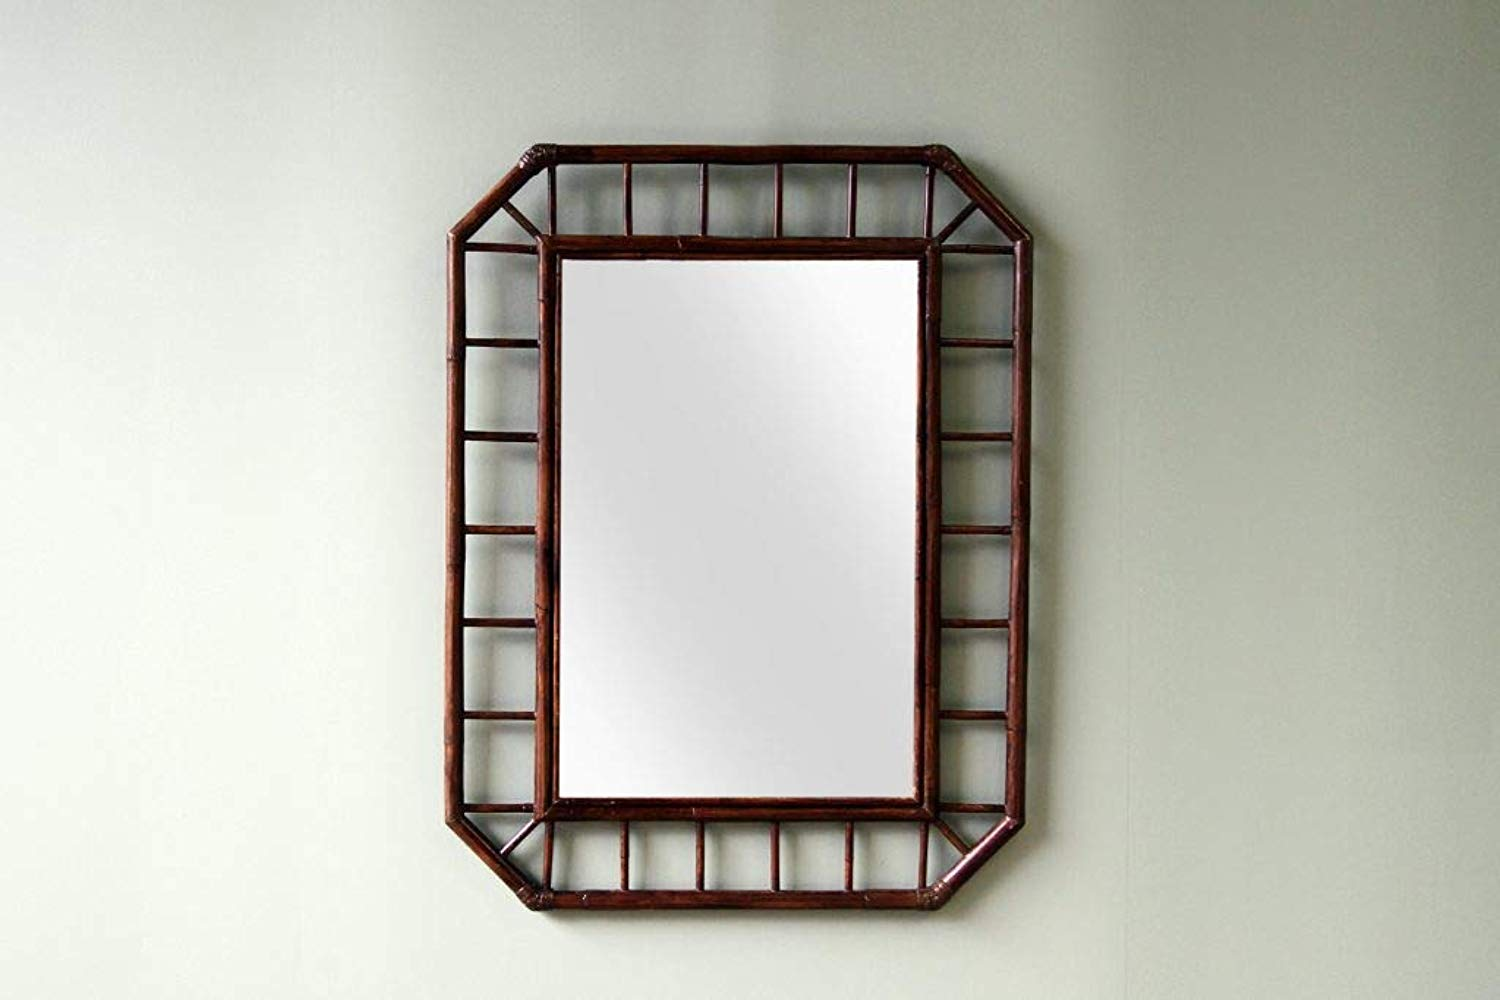 IRA Dark Brown Powder Room Mirror - IRA Furniture